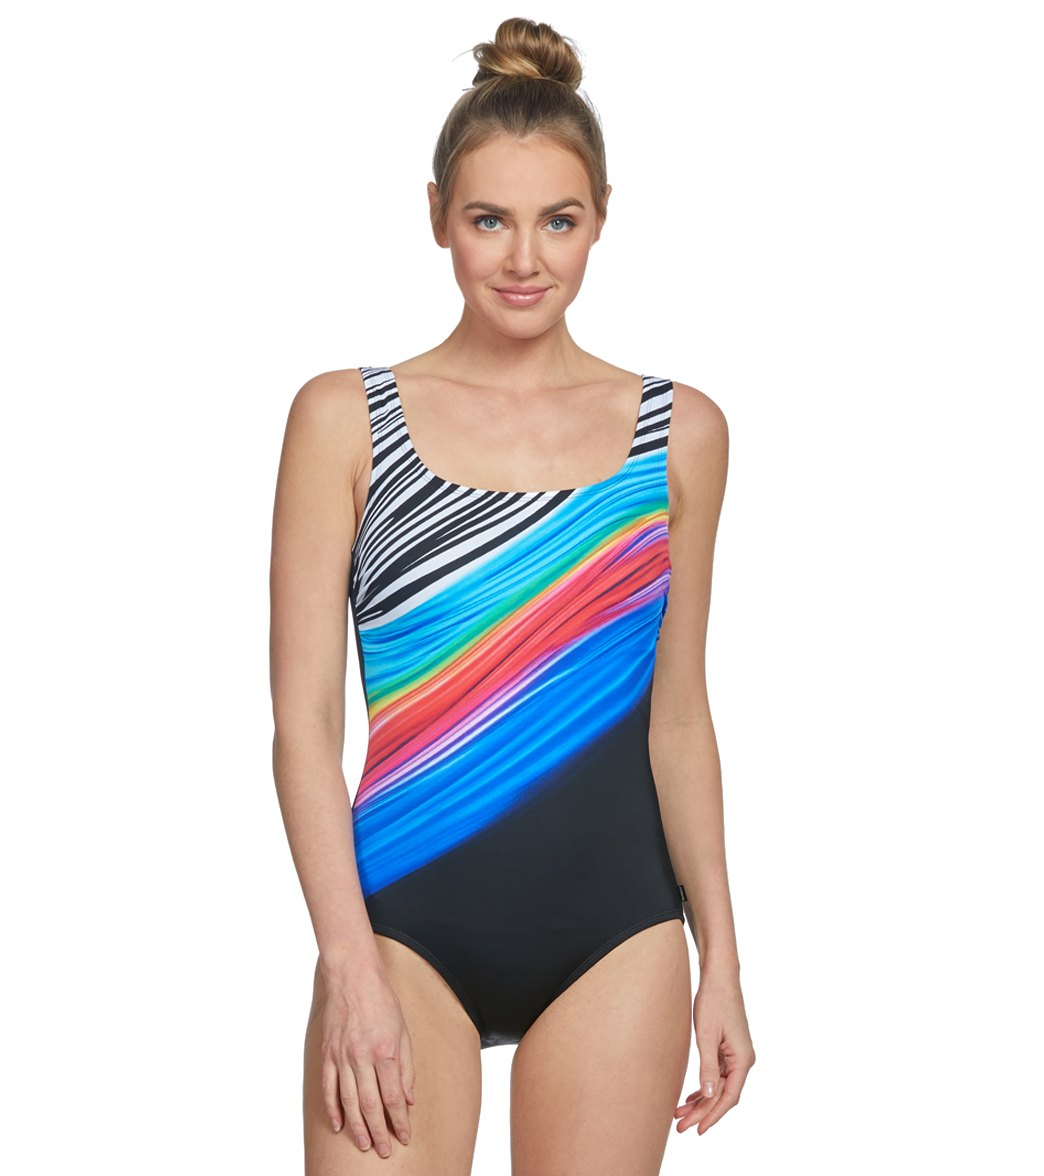 2b5b18dece112 Reebok Women's Iconic Look Scoop Neck Chlorine Resistant One Piece Swimsuit  at SwimOutlet.com - Free Shipping